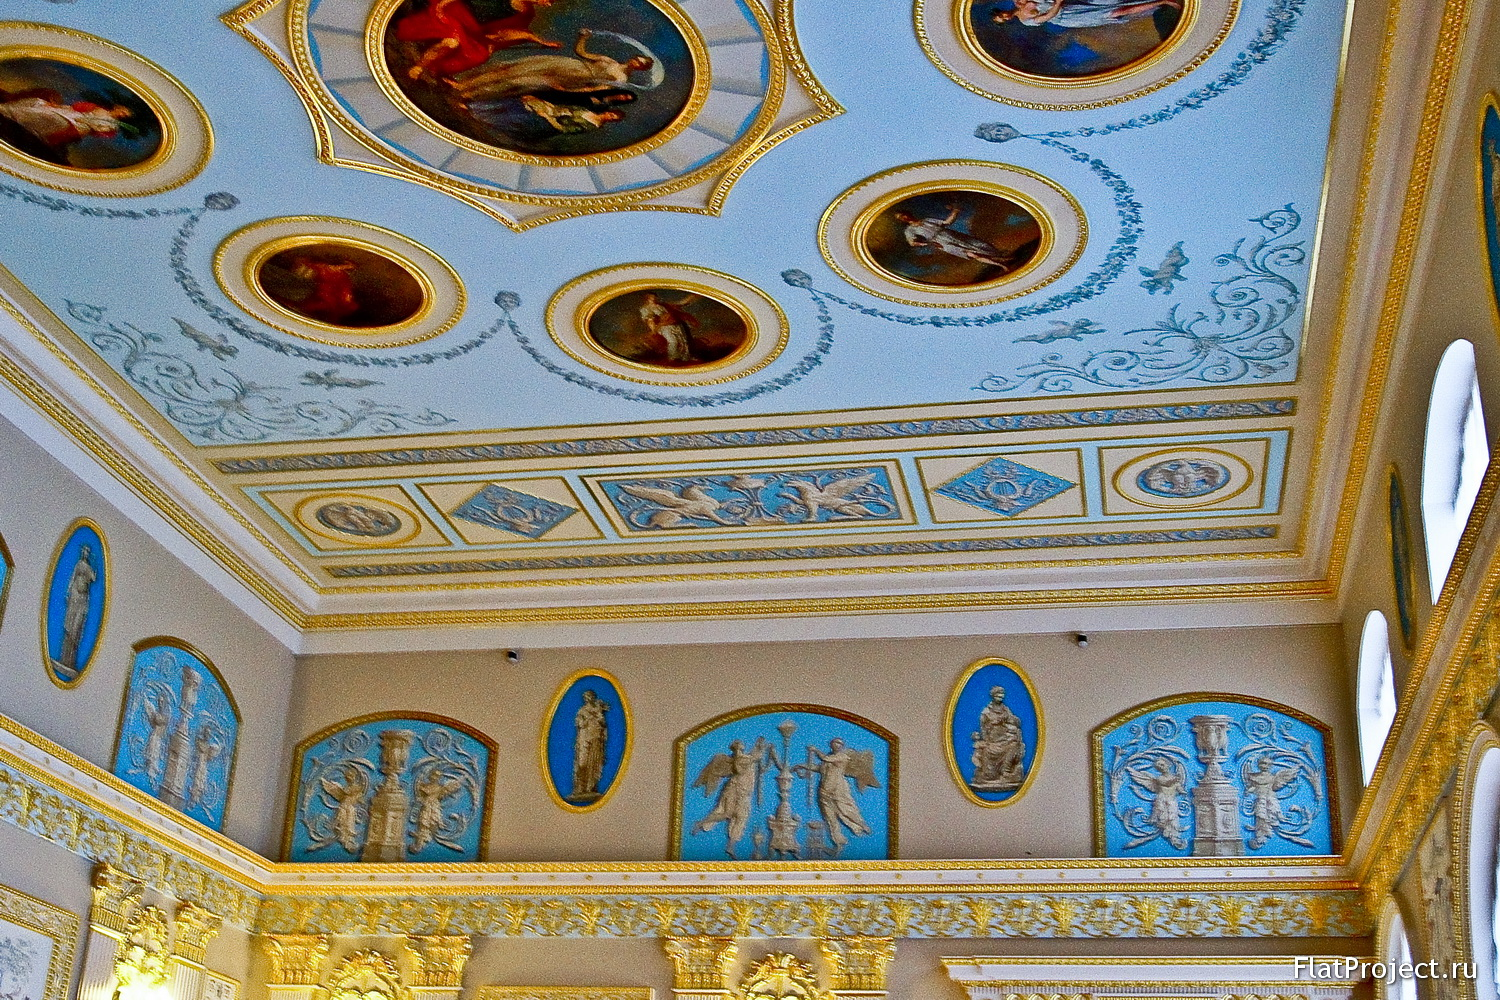 The Catherine Palace interiors – photo 222